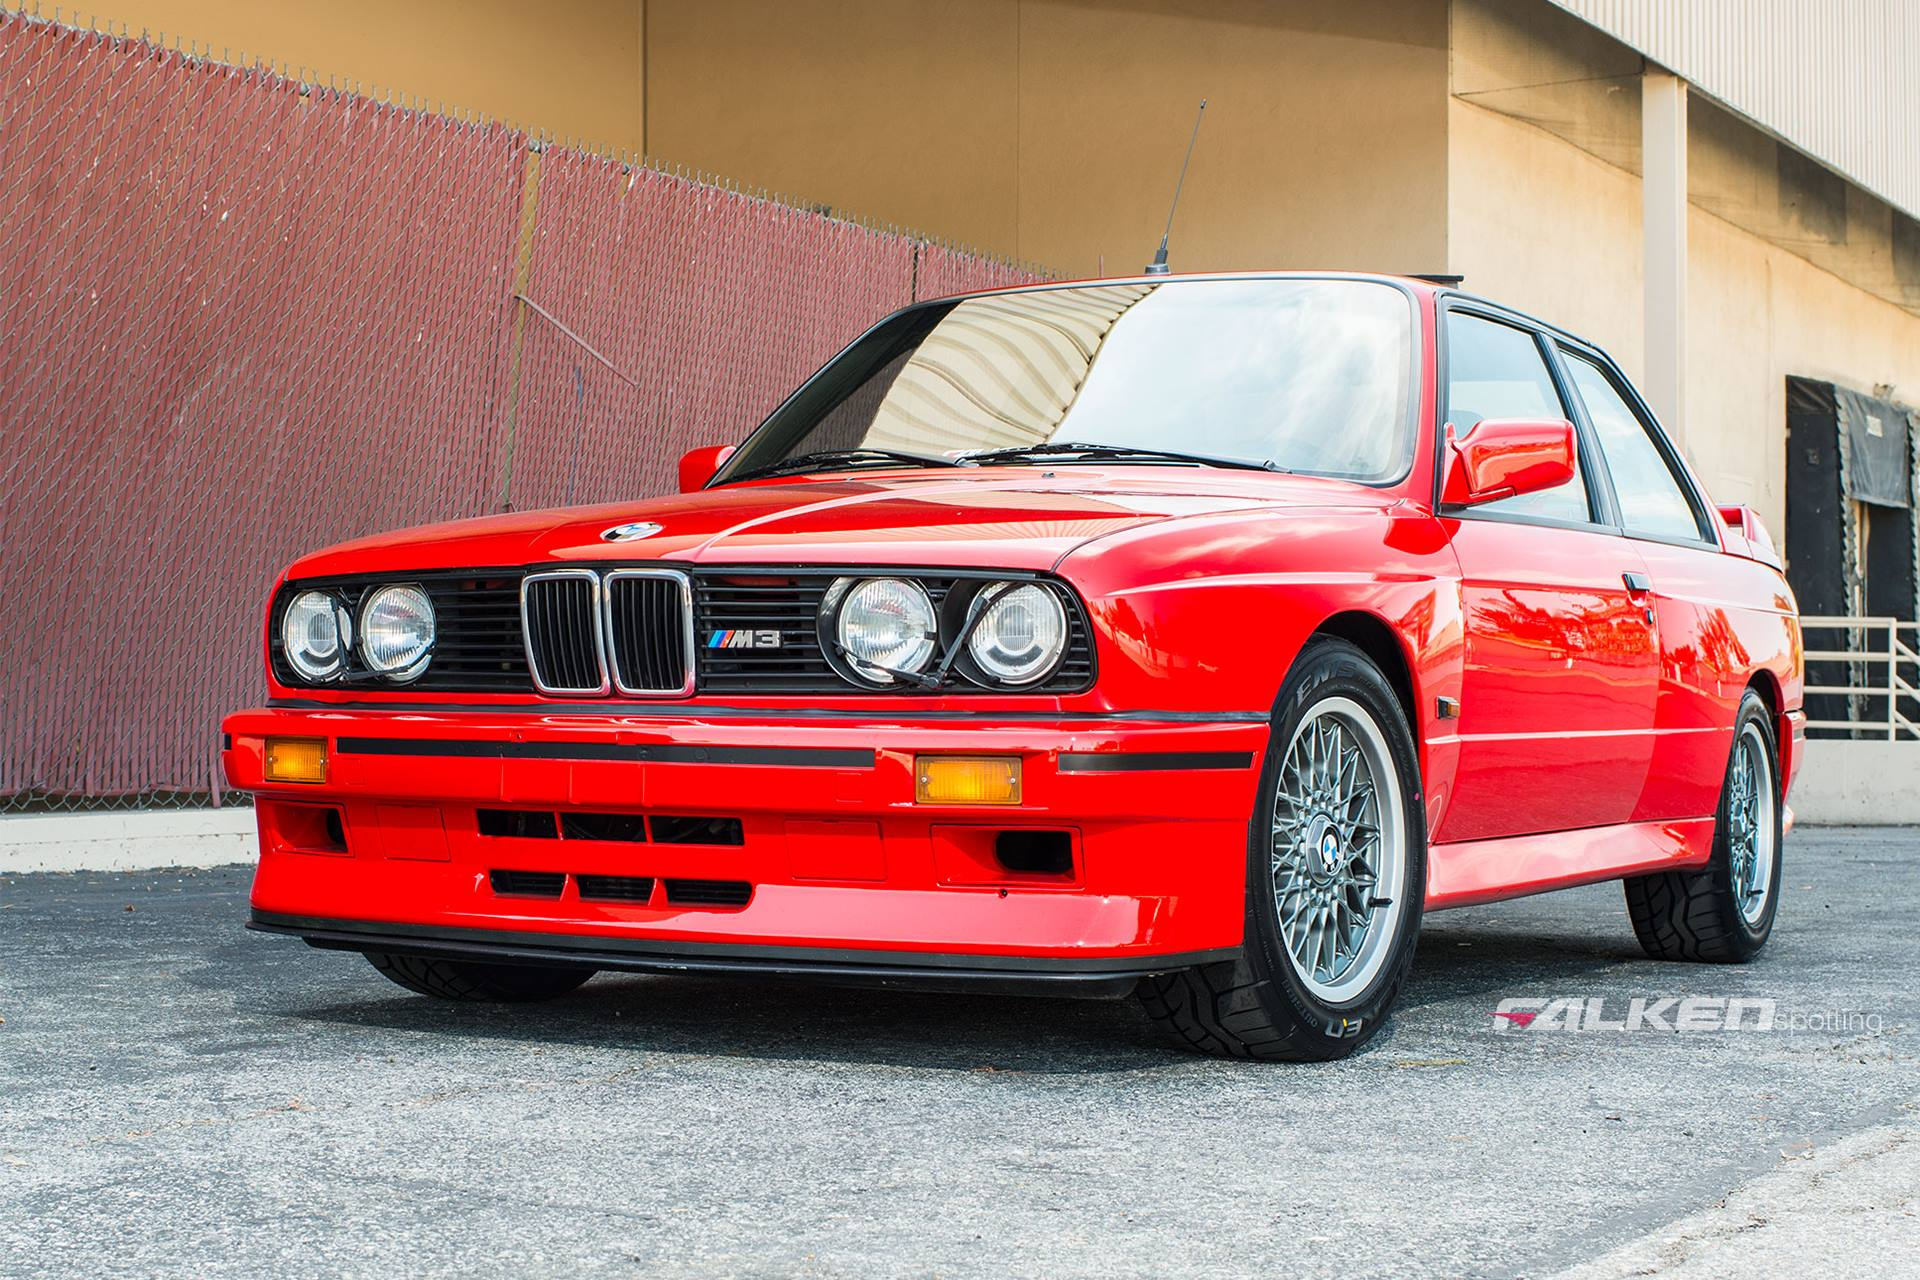 BMW E30 M3 - HisPotion